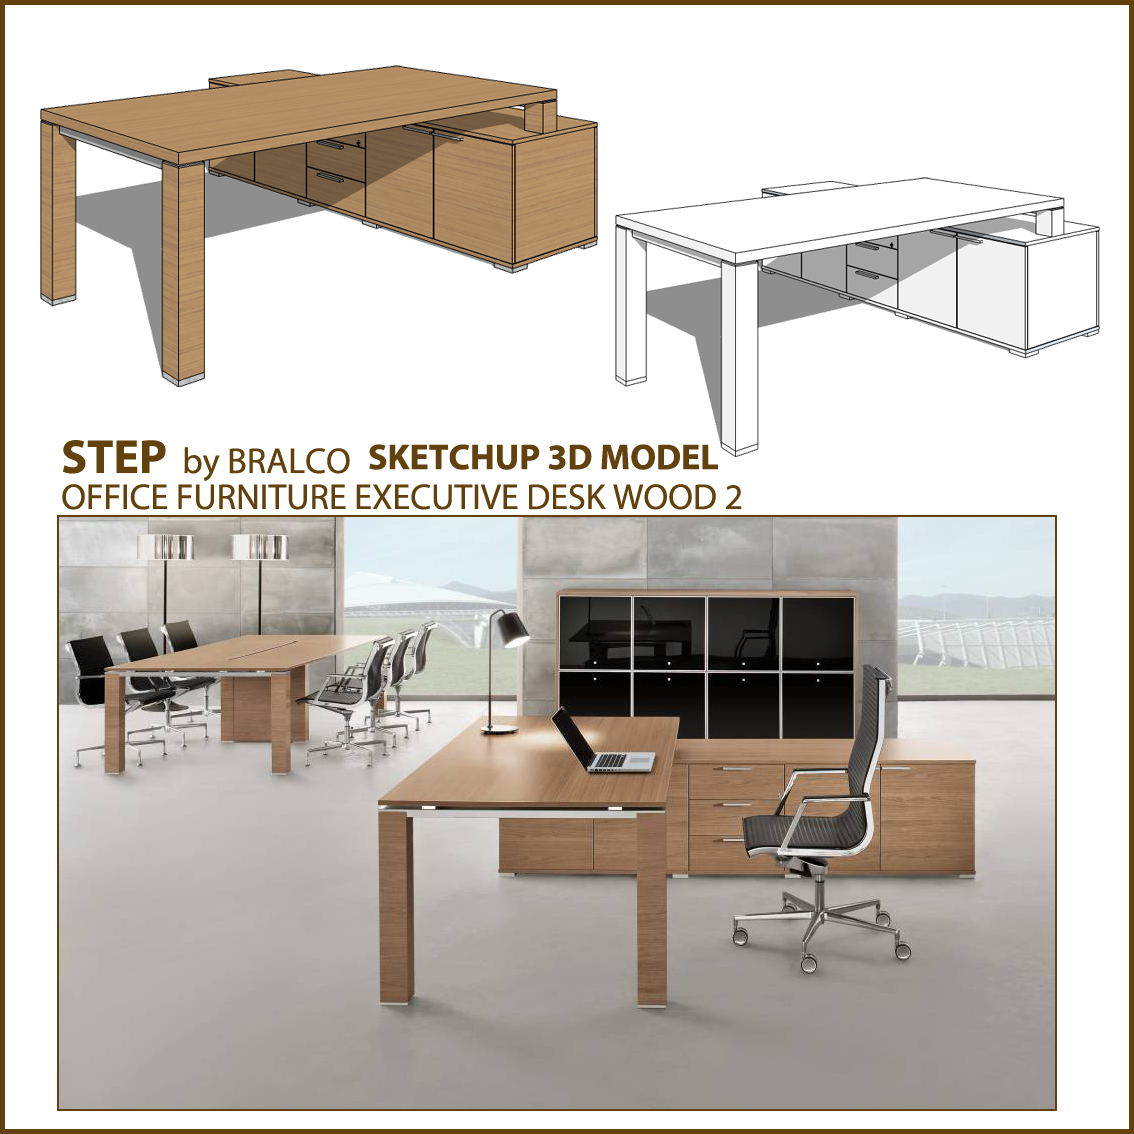 SKETCHUP TEXTURE: FREE SKETCHUP 3D MODEL OFFICE FURNITURE